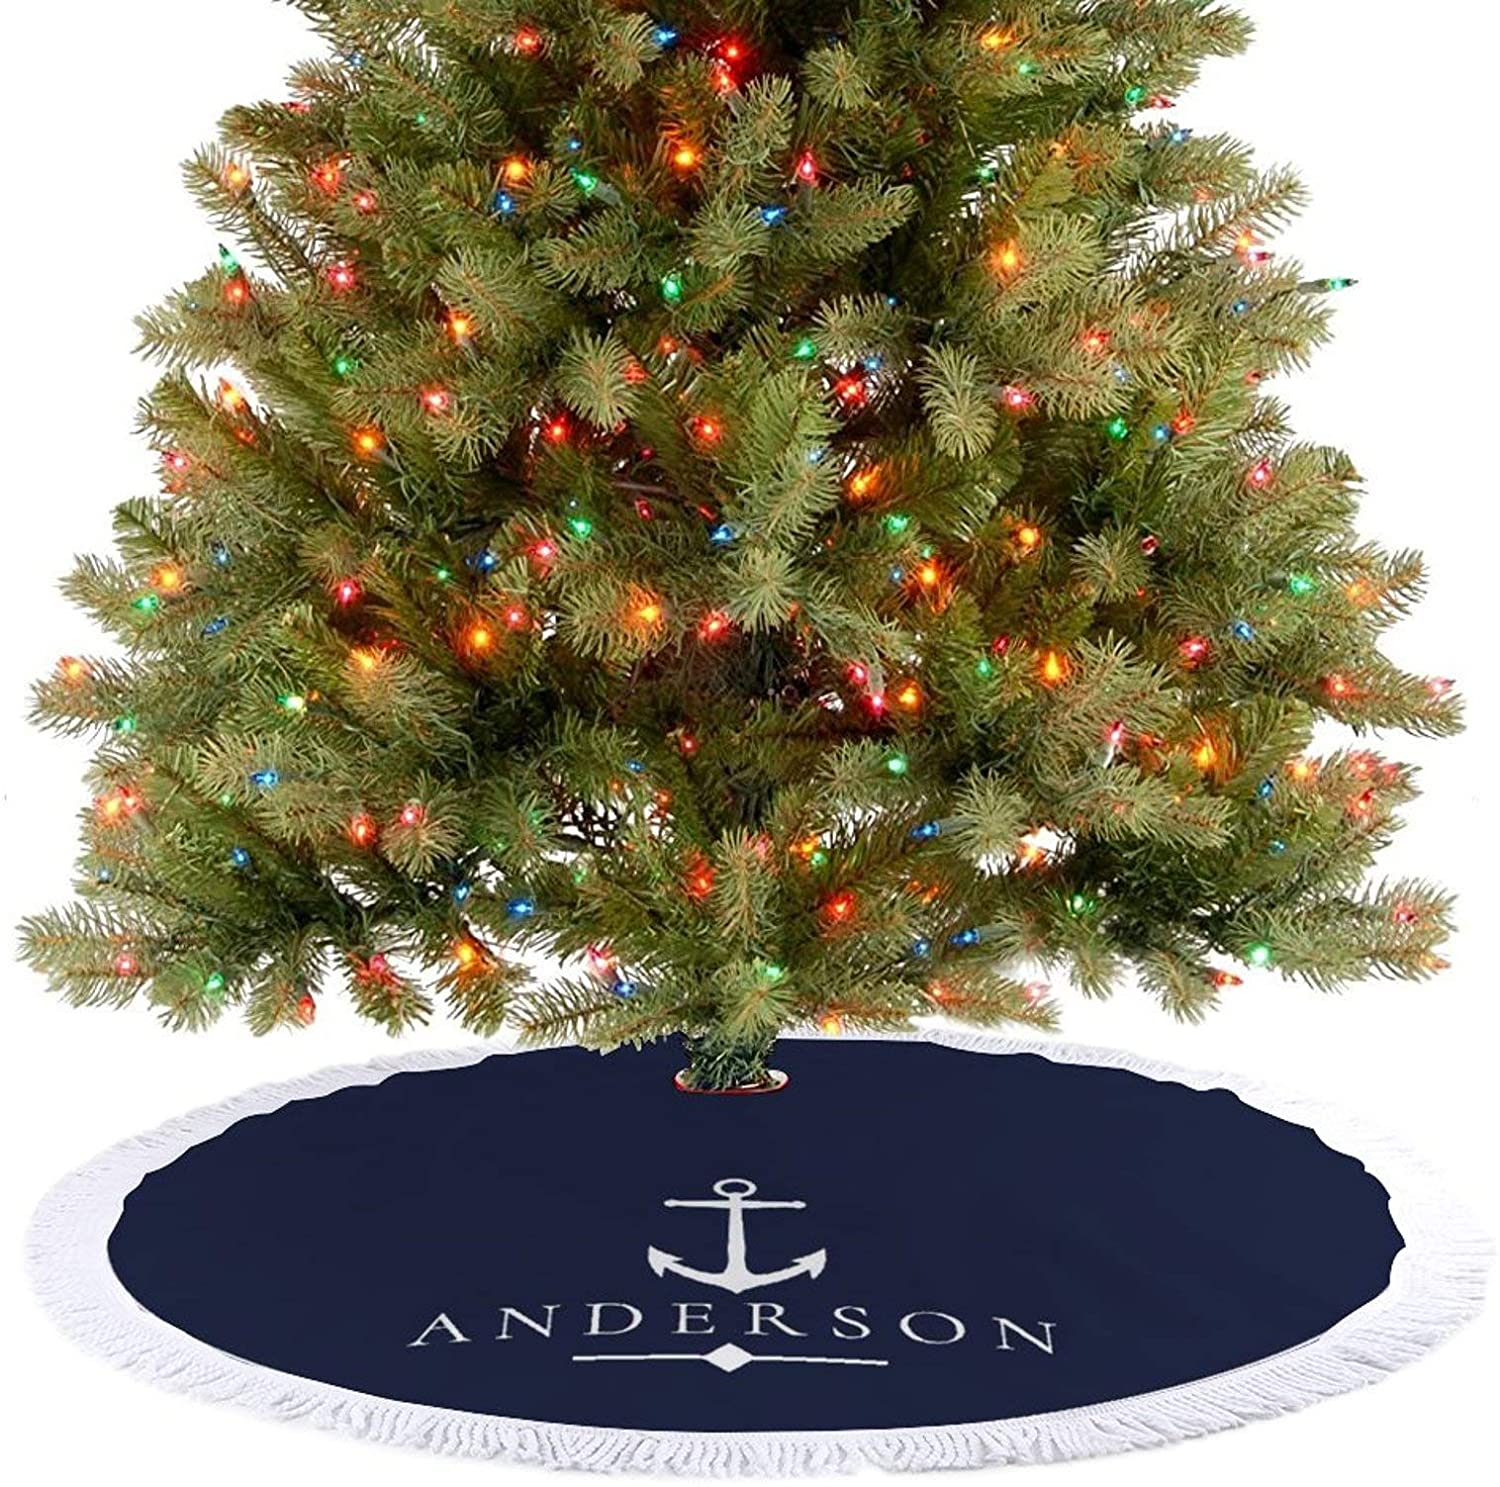 JHSLAJ Nautical White Anchor & Navy Blue Personalized Christmas Tree Skirt for Xmas New Year Holiday Decorations Indoor or Outdoor